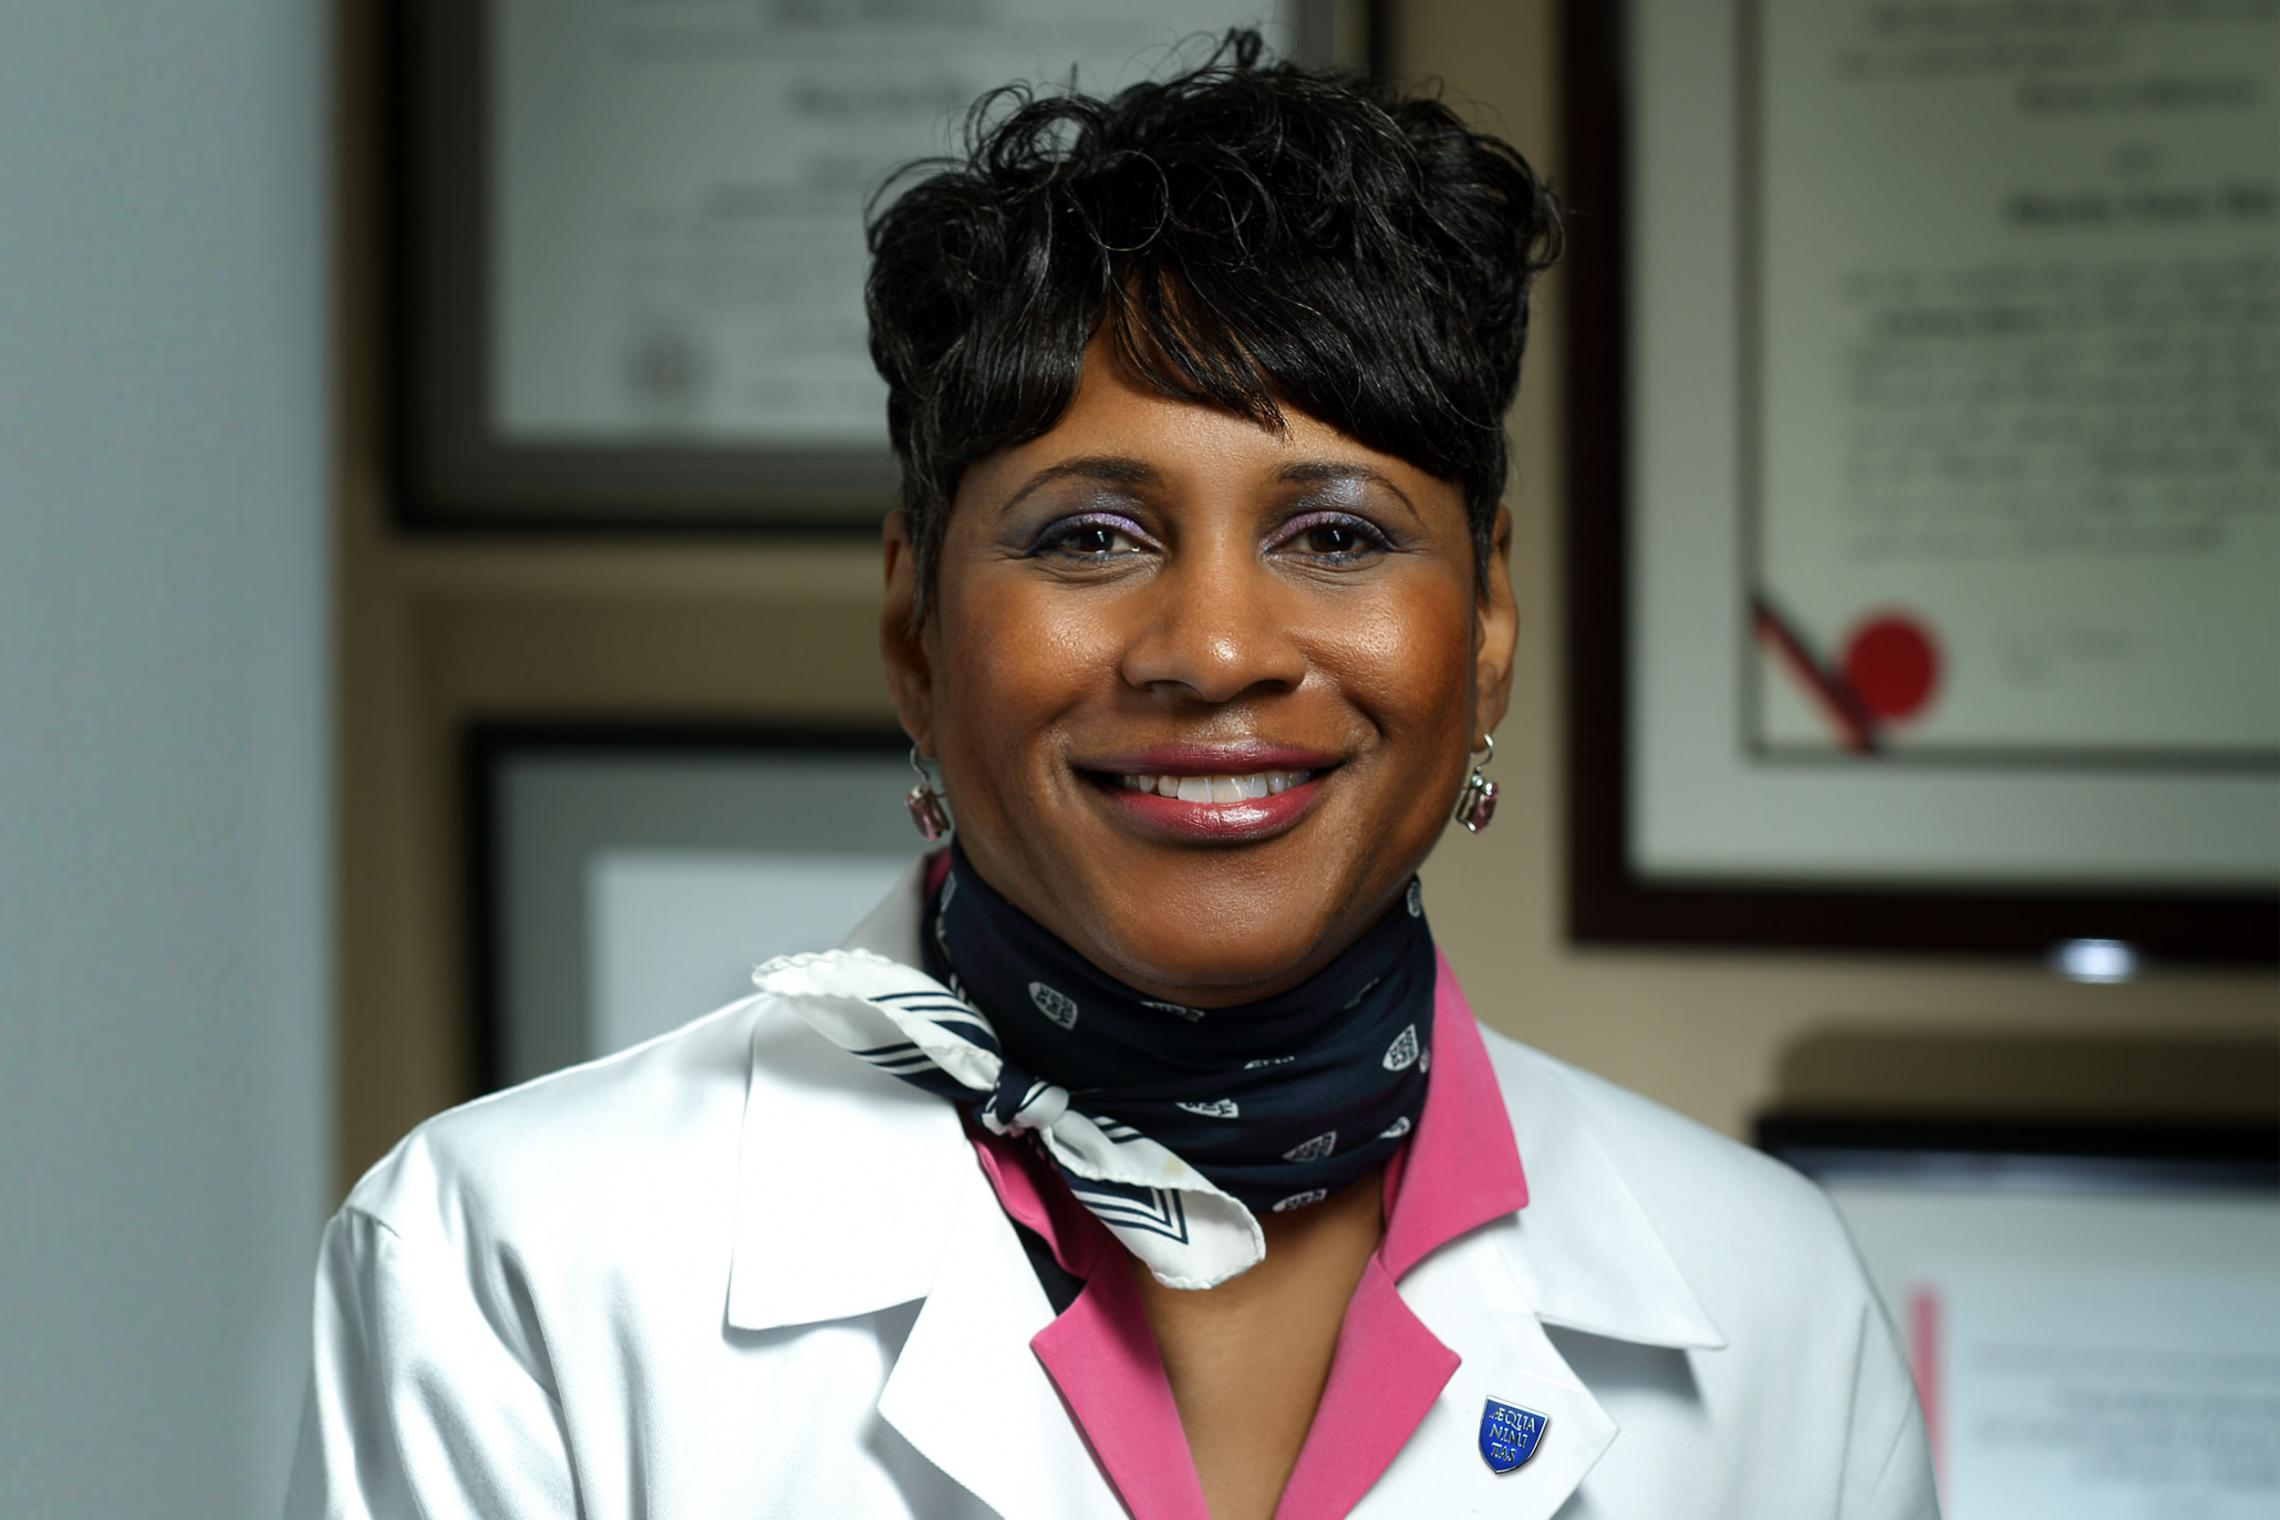 """Dr. Sherita Golden, now a renowned doctor at Johns Hopkins, described her time as a UVA medical student as """"four of the most formative years of my life."""""""